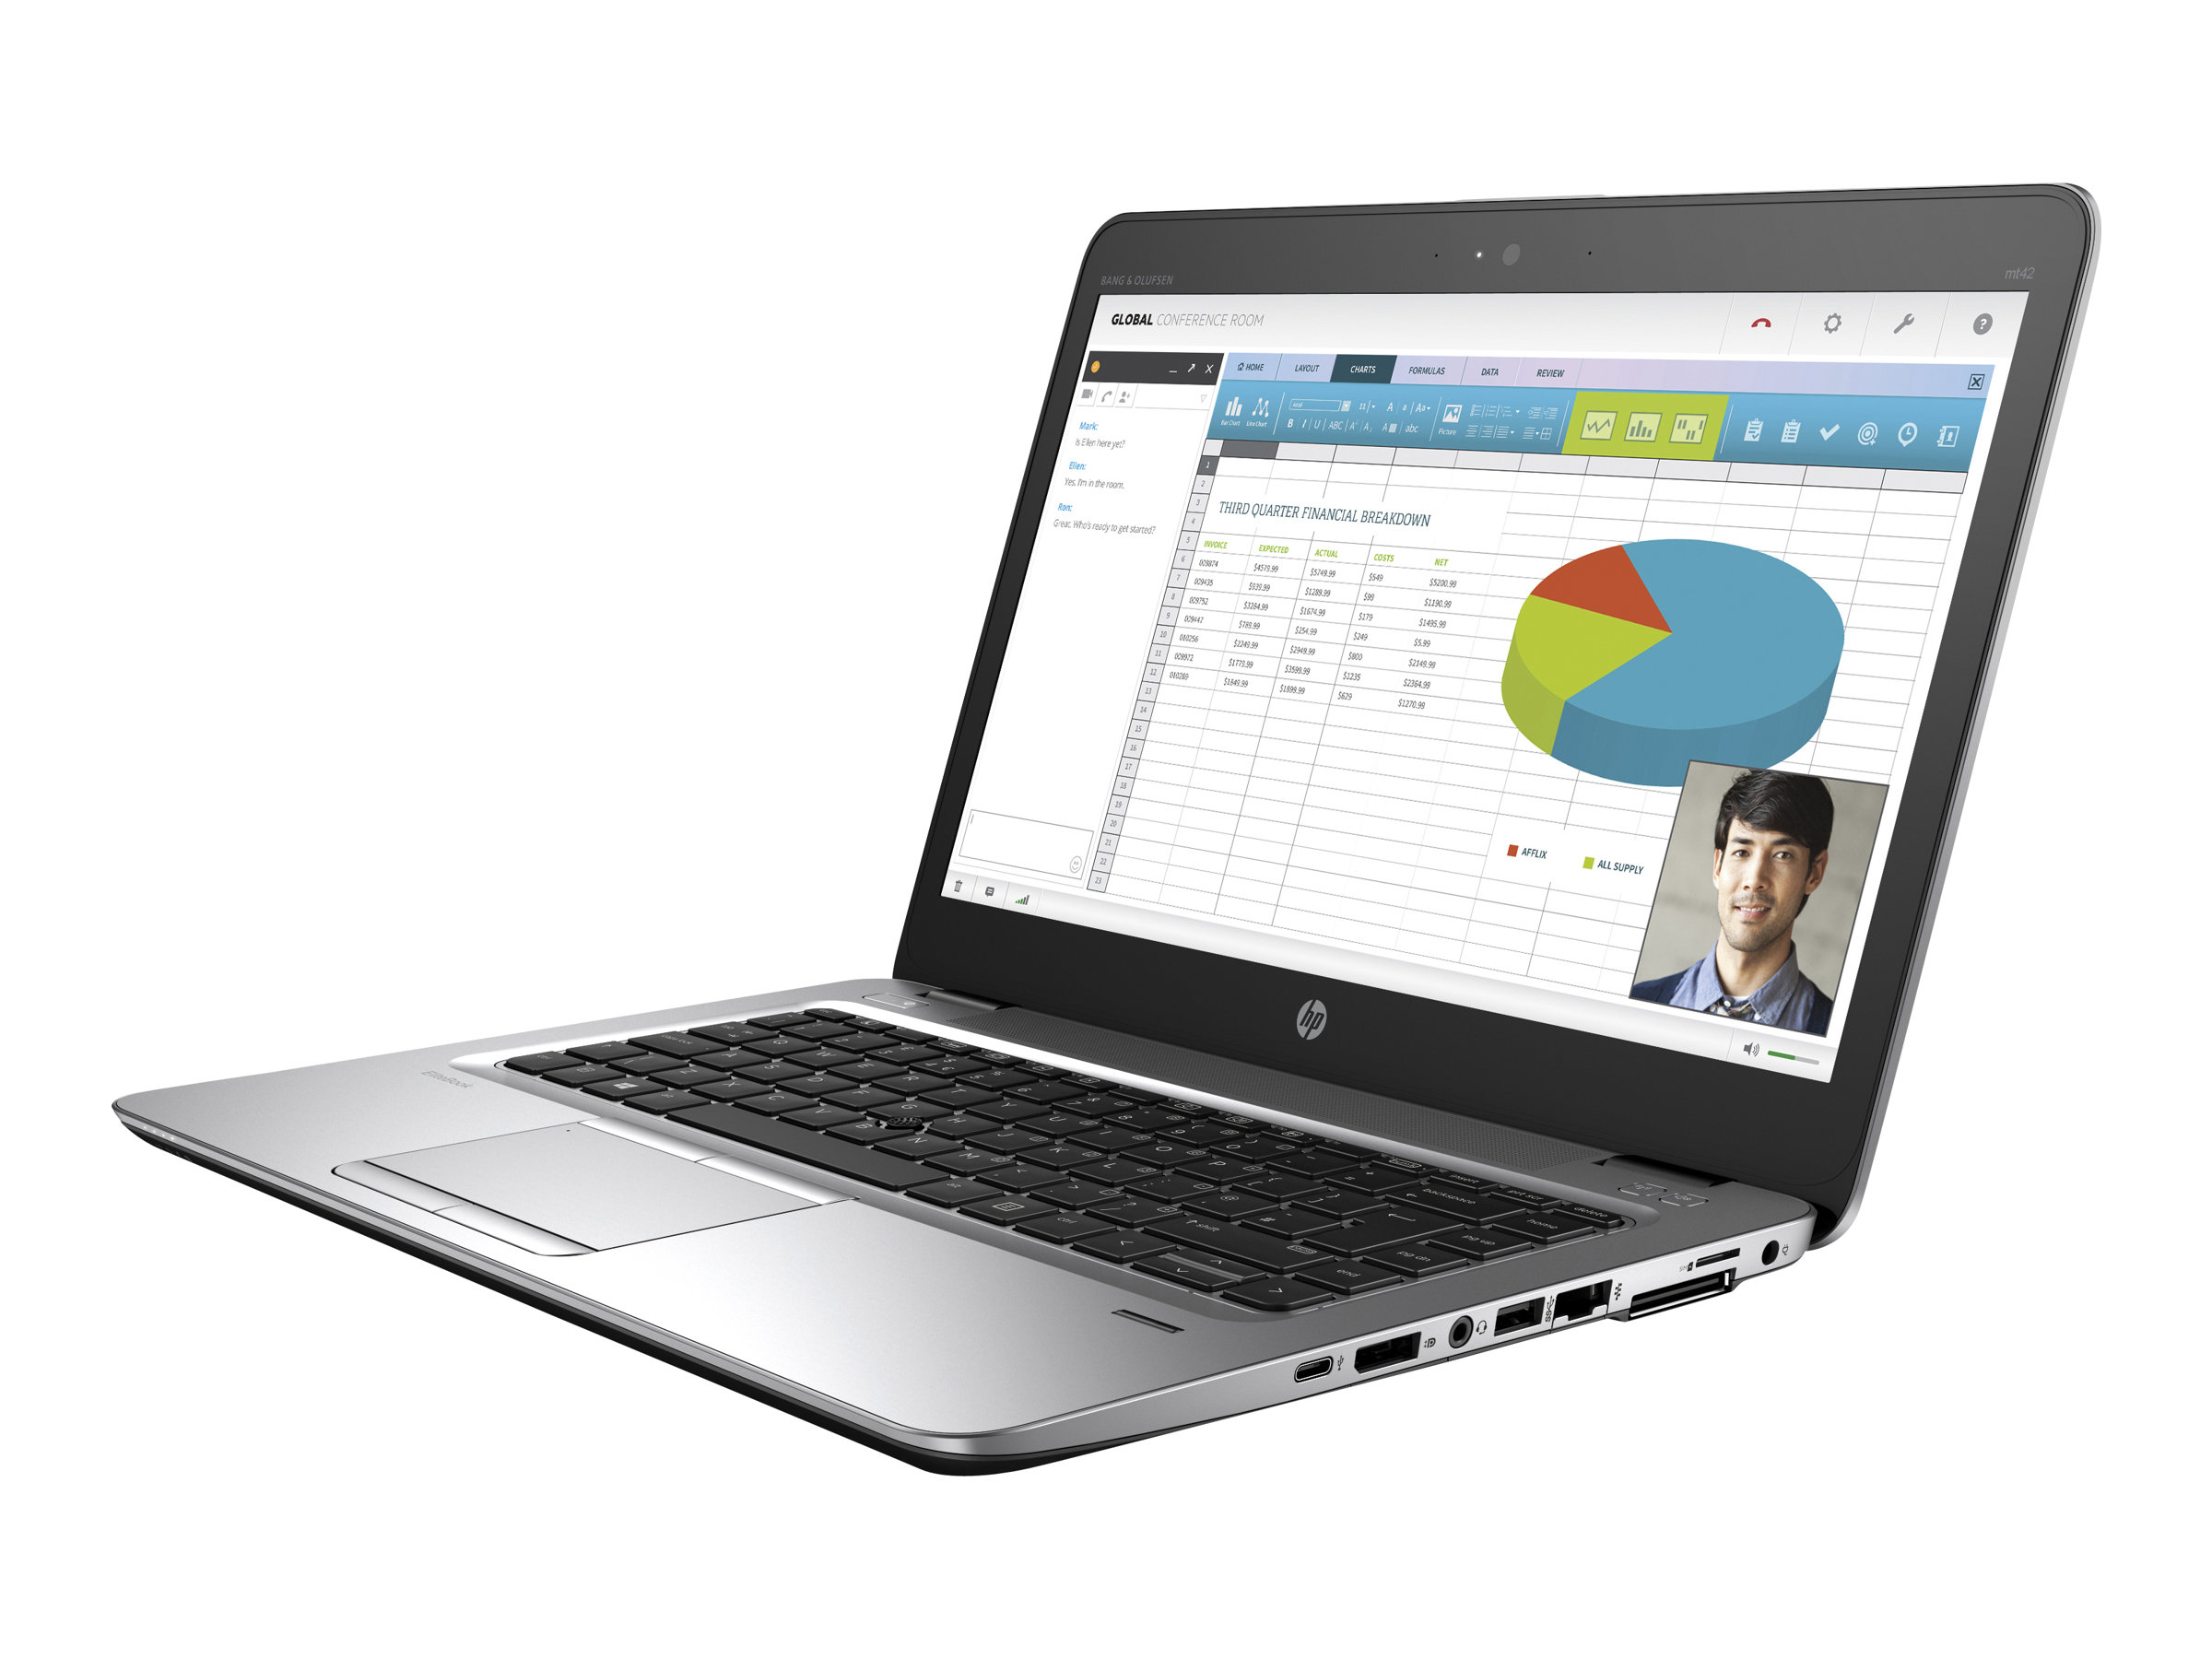 HP Mobile Thin Client mt42 - A8 PRO-8600B / 1.66 GHz - Win Embedded Standard 7E 32-Bit - 4 GB RAM - 32 GB SSD - 35.6 cm (14